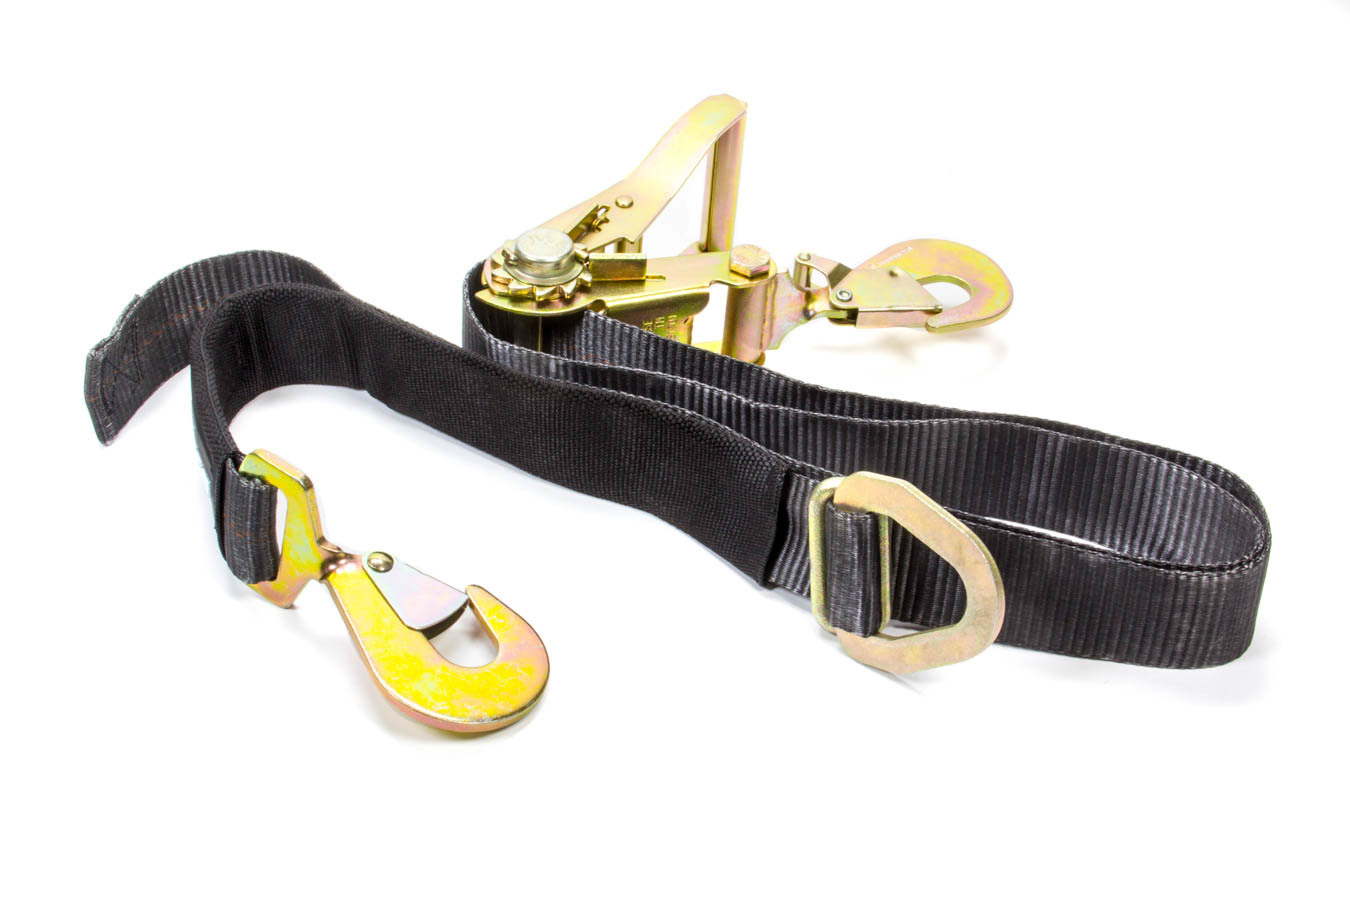 2in x 8ft Tie Down/Axle Strap Combo